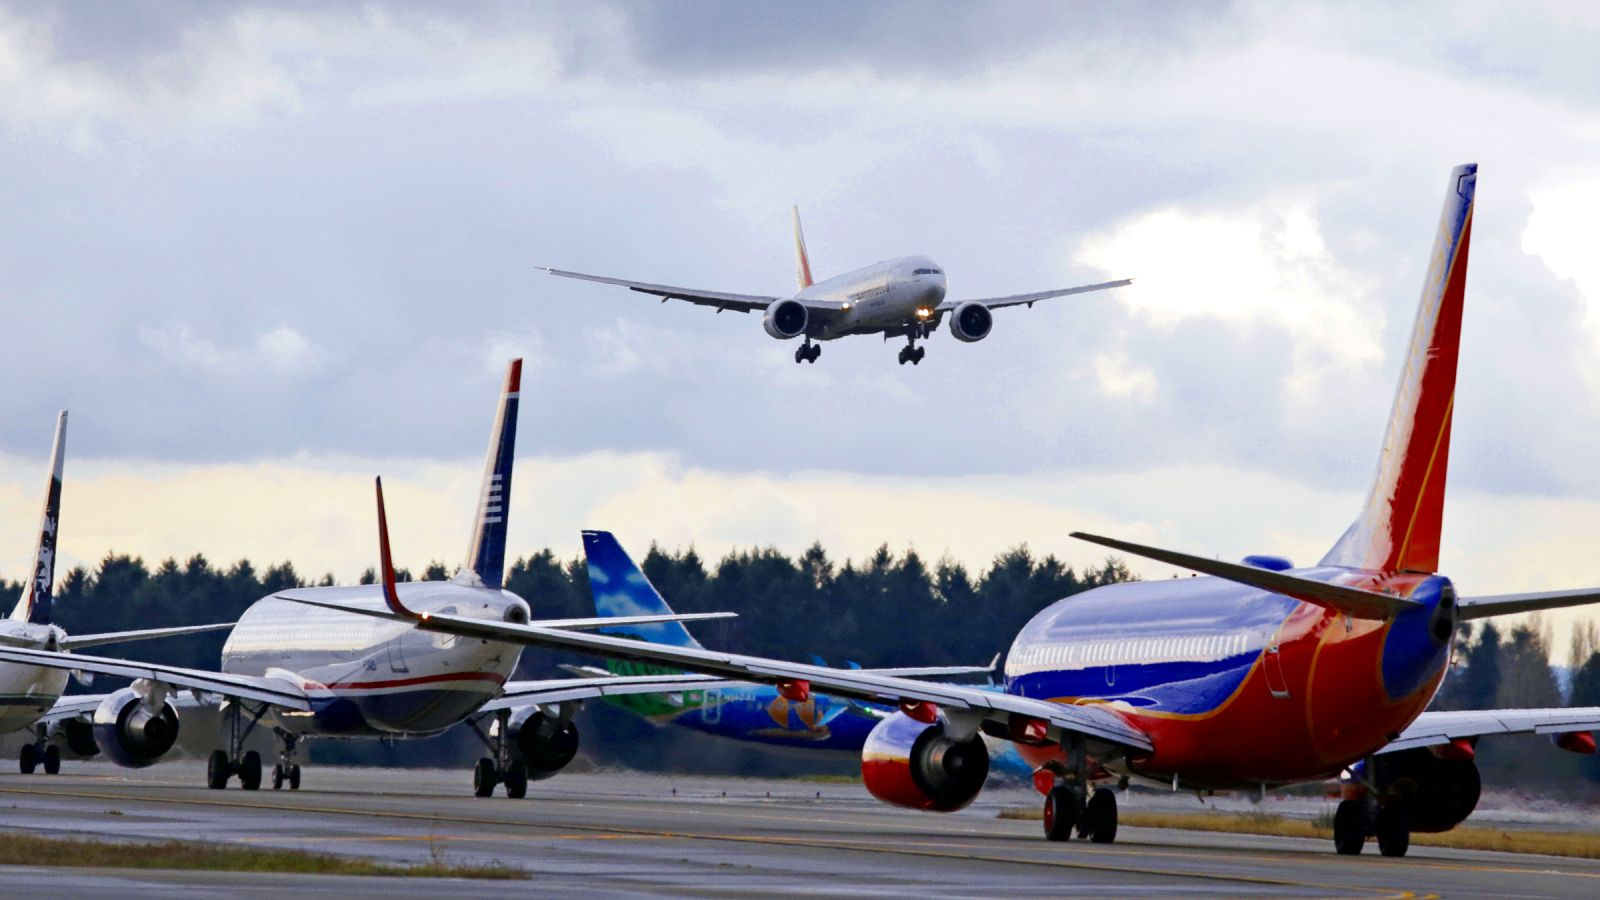 A handful of cranky people risk making air travel costlier and more polluting for everyone - Quartz